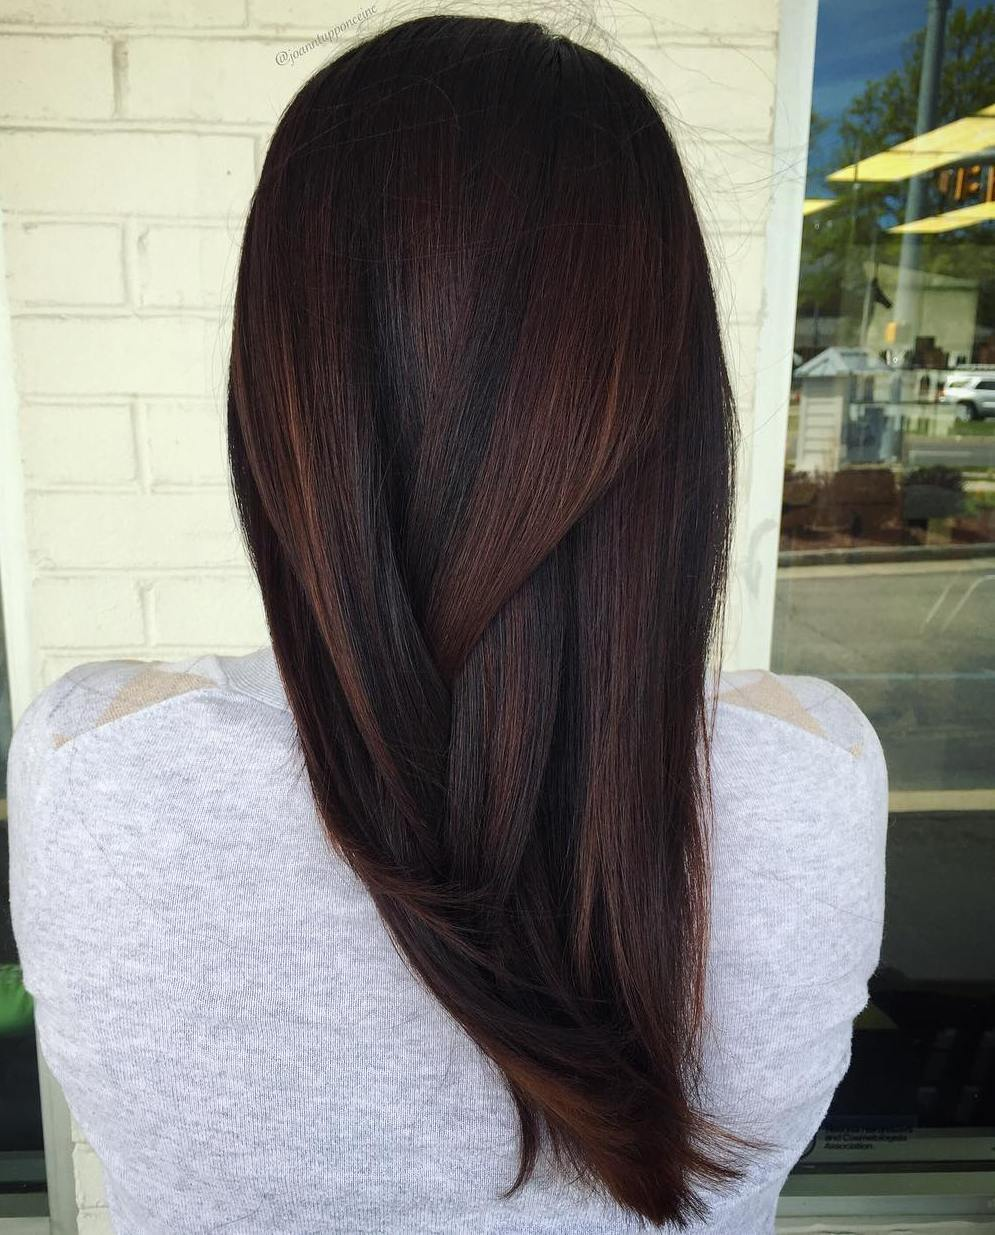 1-dark-brown-hair-with-subtle-highlights